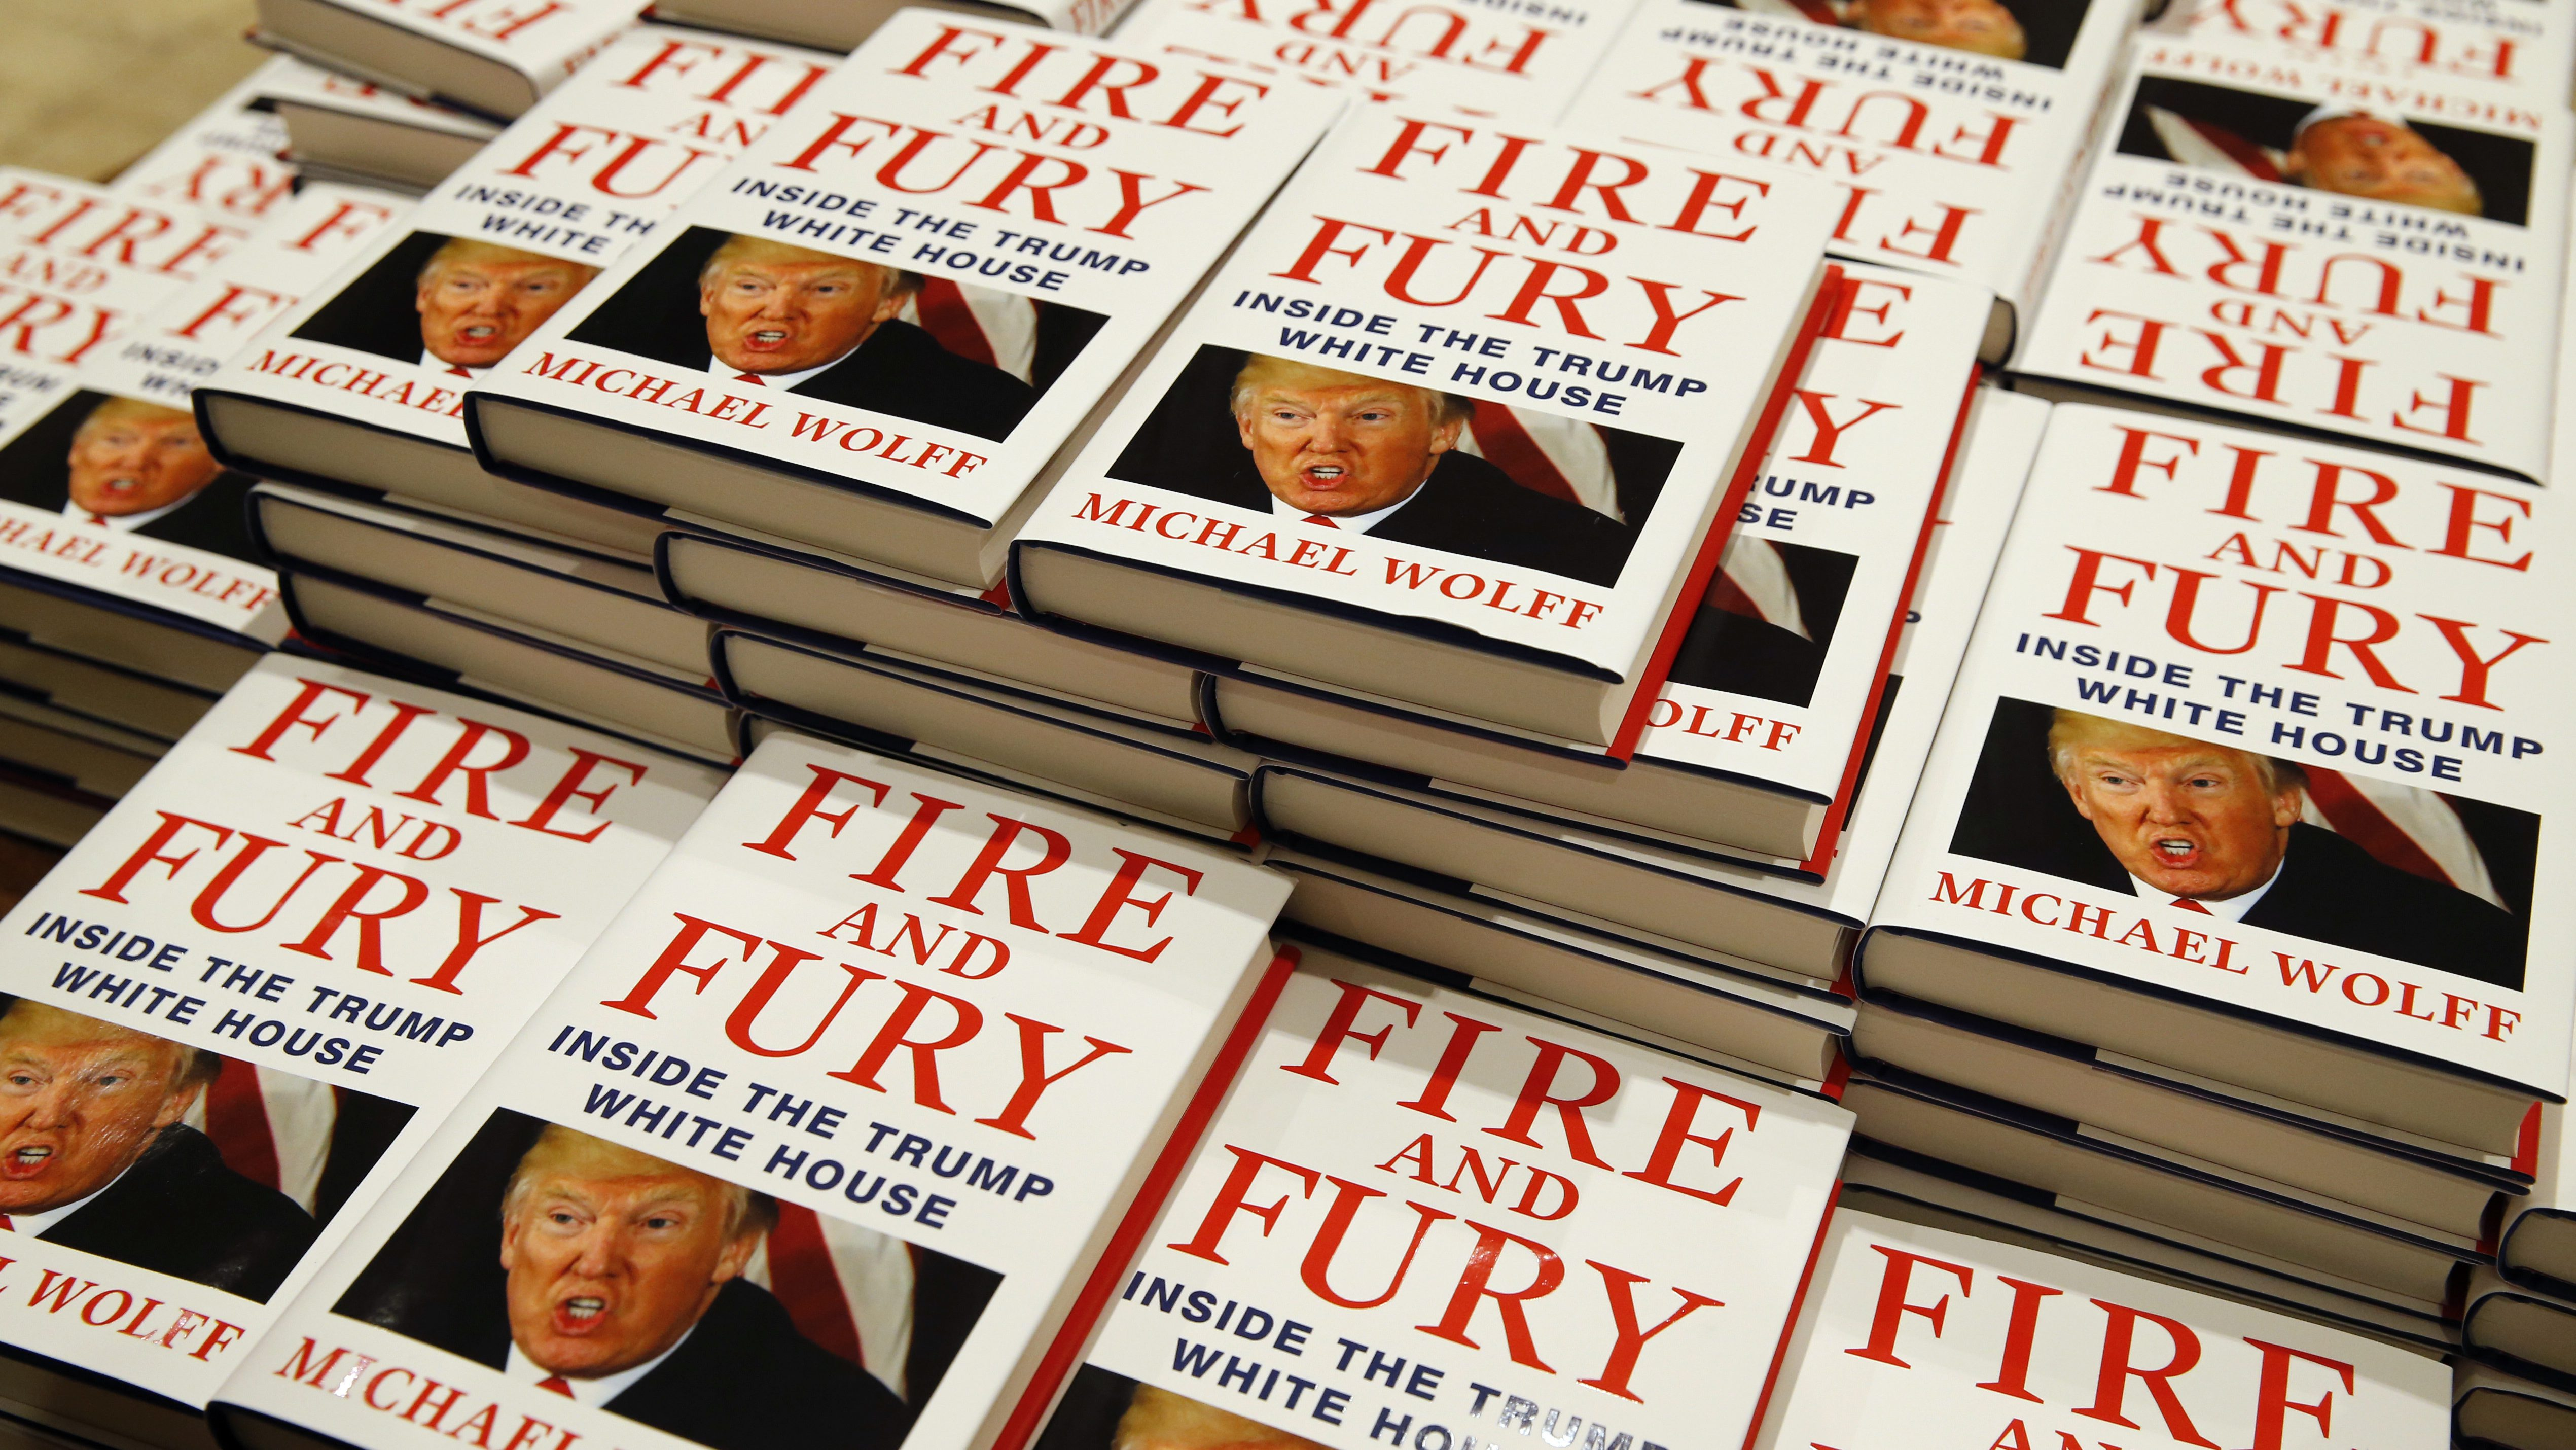 Michael Wolff book Fire and Fury